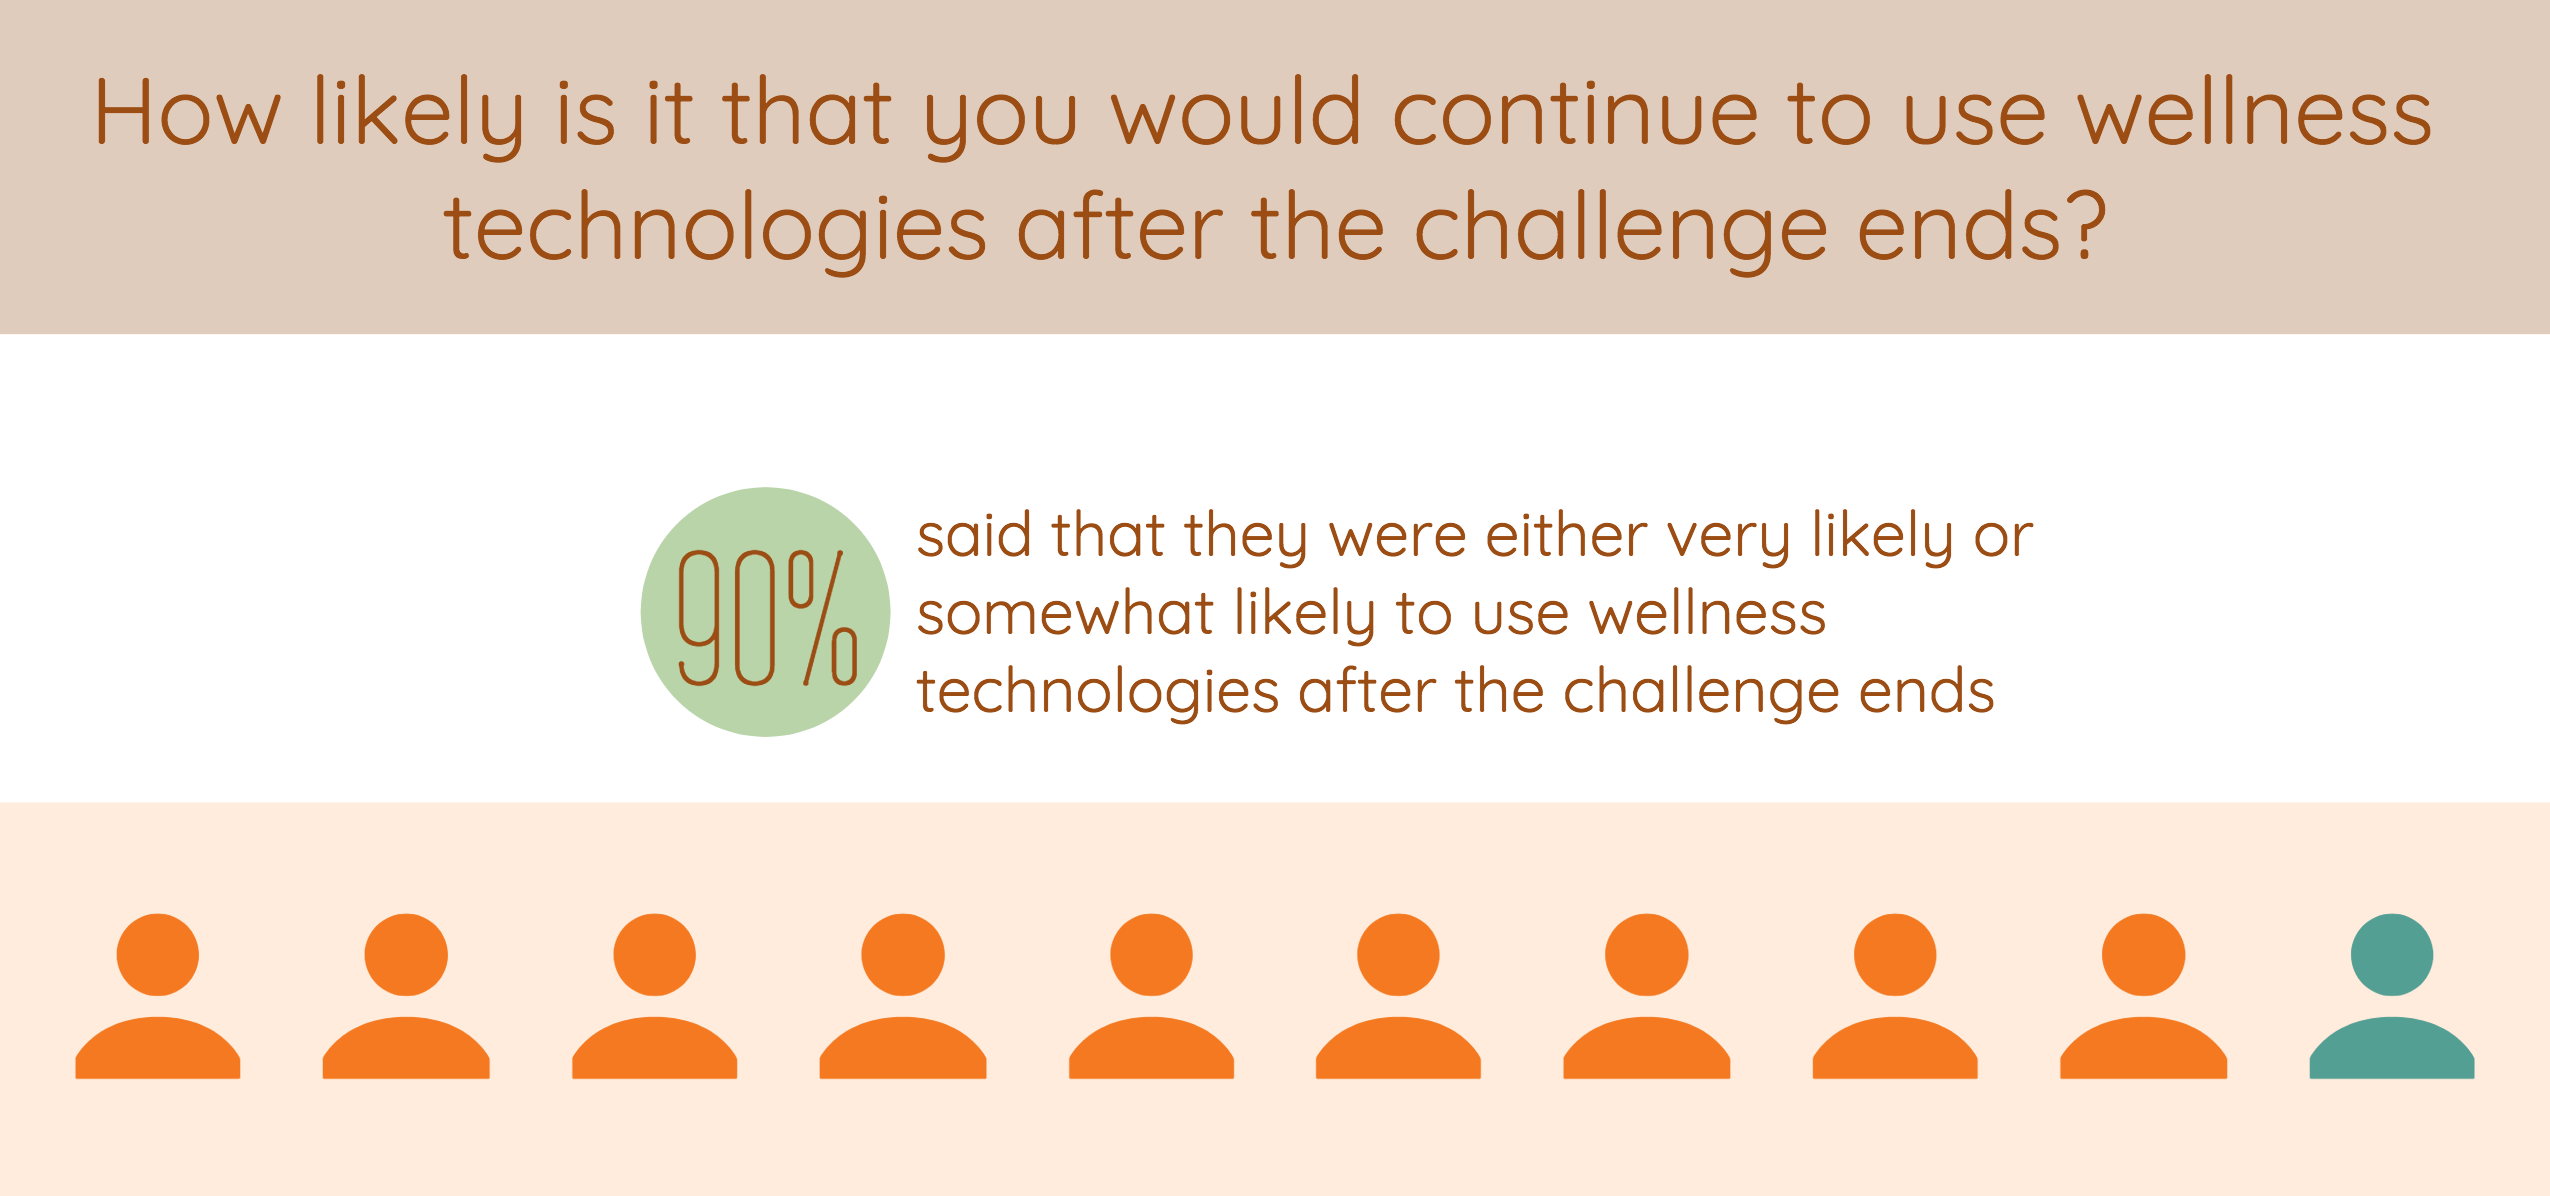 How likely is it that participant would continue to use wellness technologies after Wellable's wellness challenge ends?